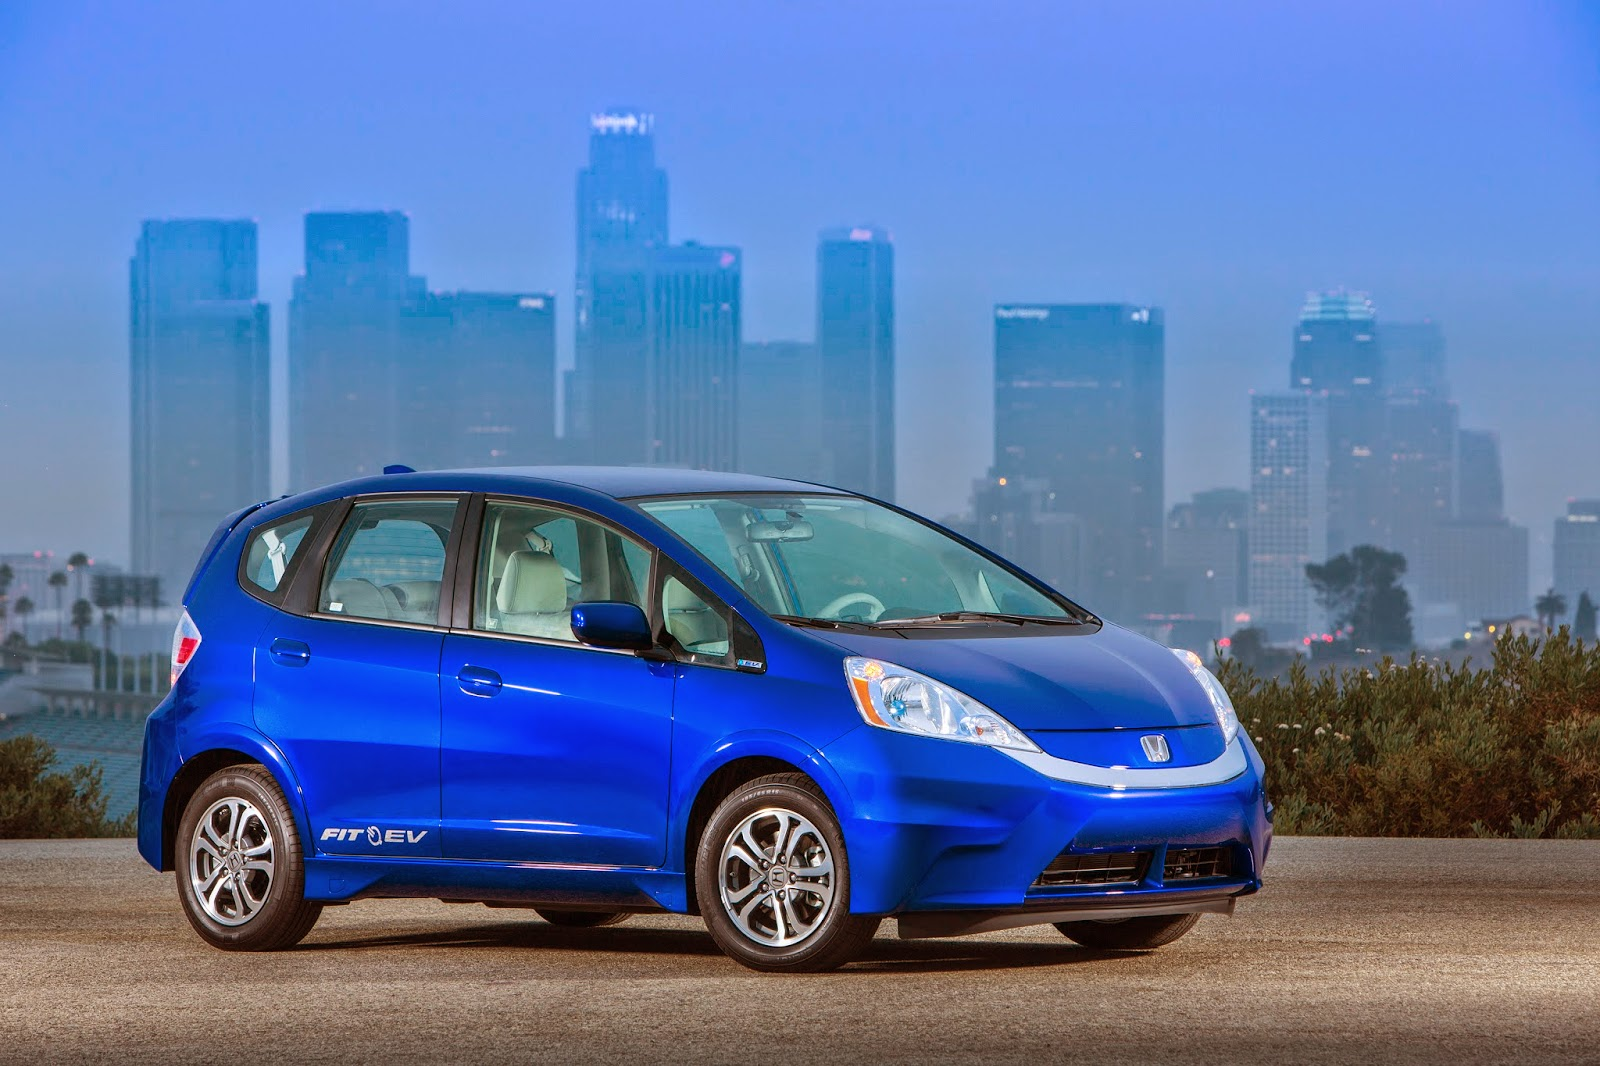 Front 3/4 view of the 2014 Honda Fit EV